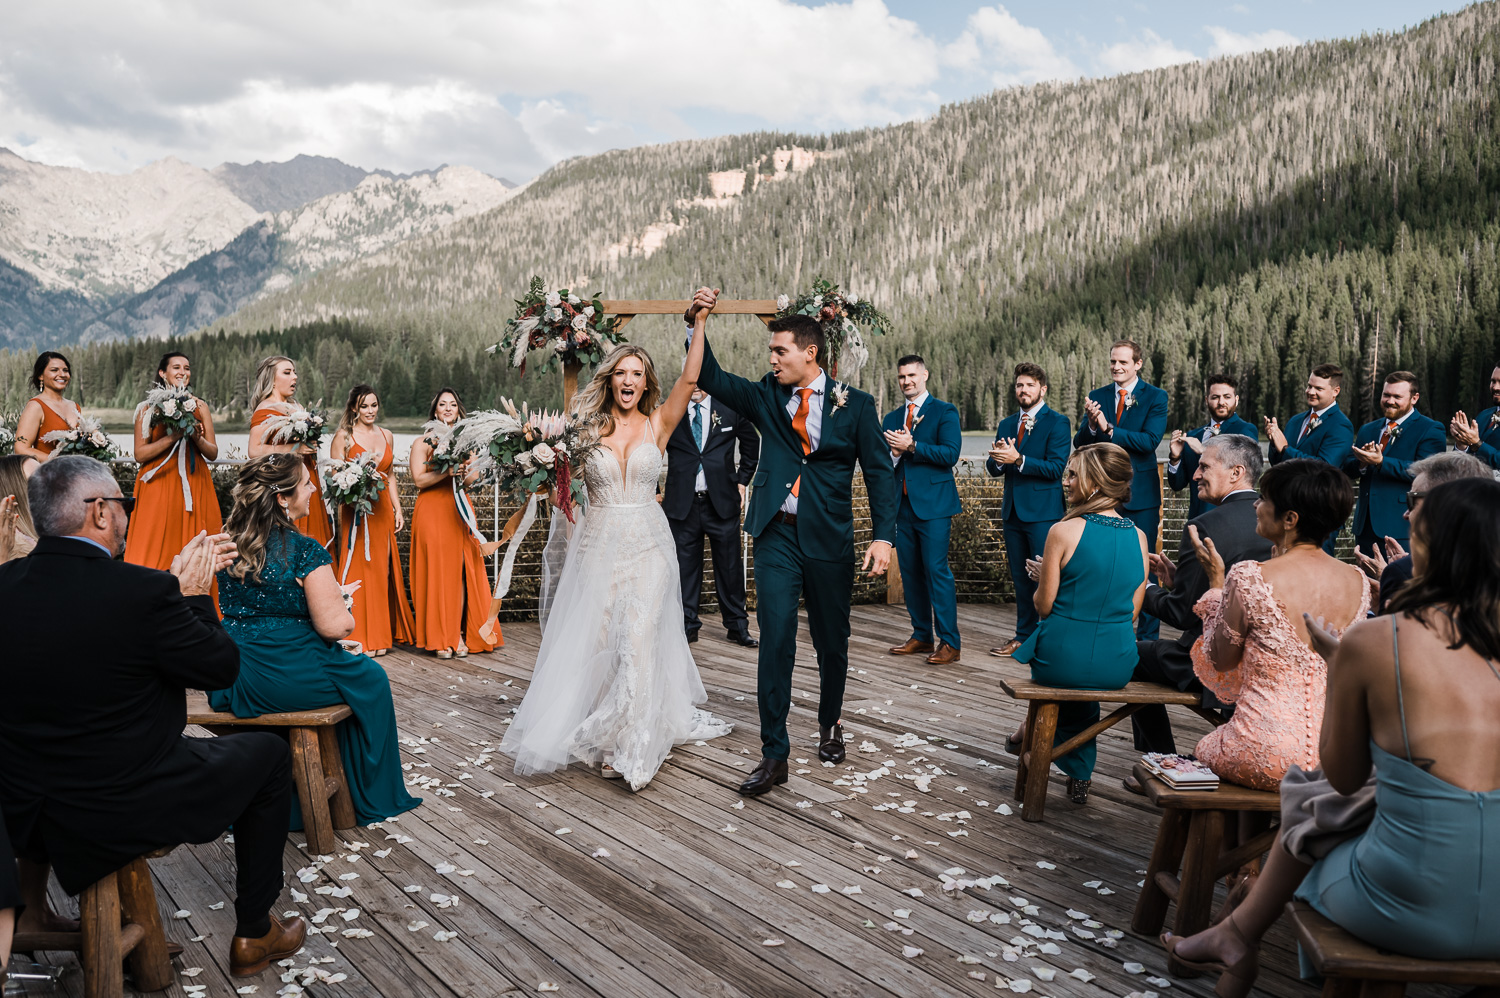 Bride and Groom hold hands and cheer while walking down aisle after wedding at Piney River Ranch